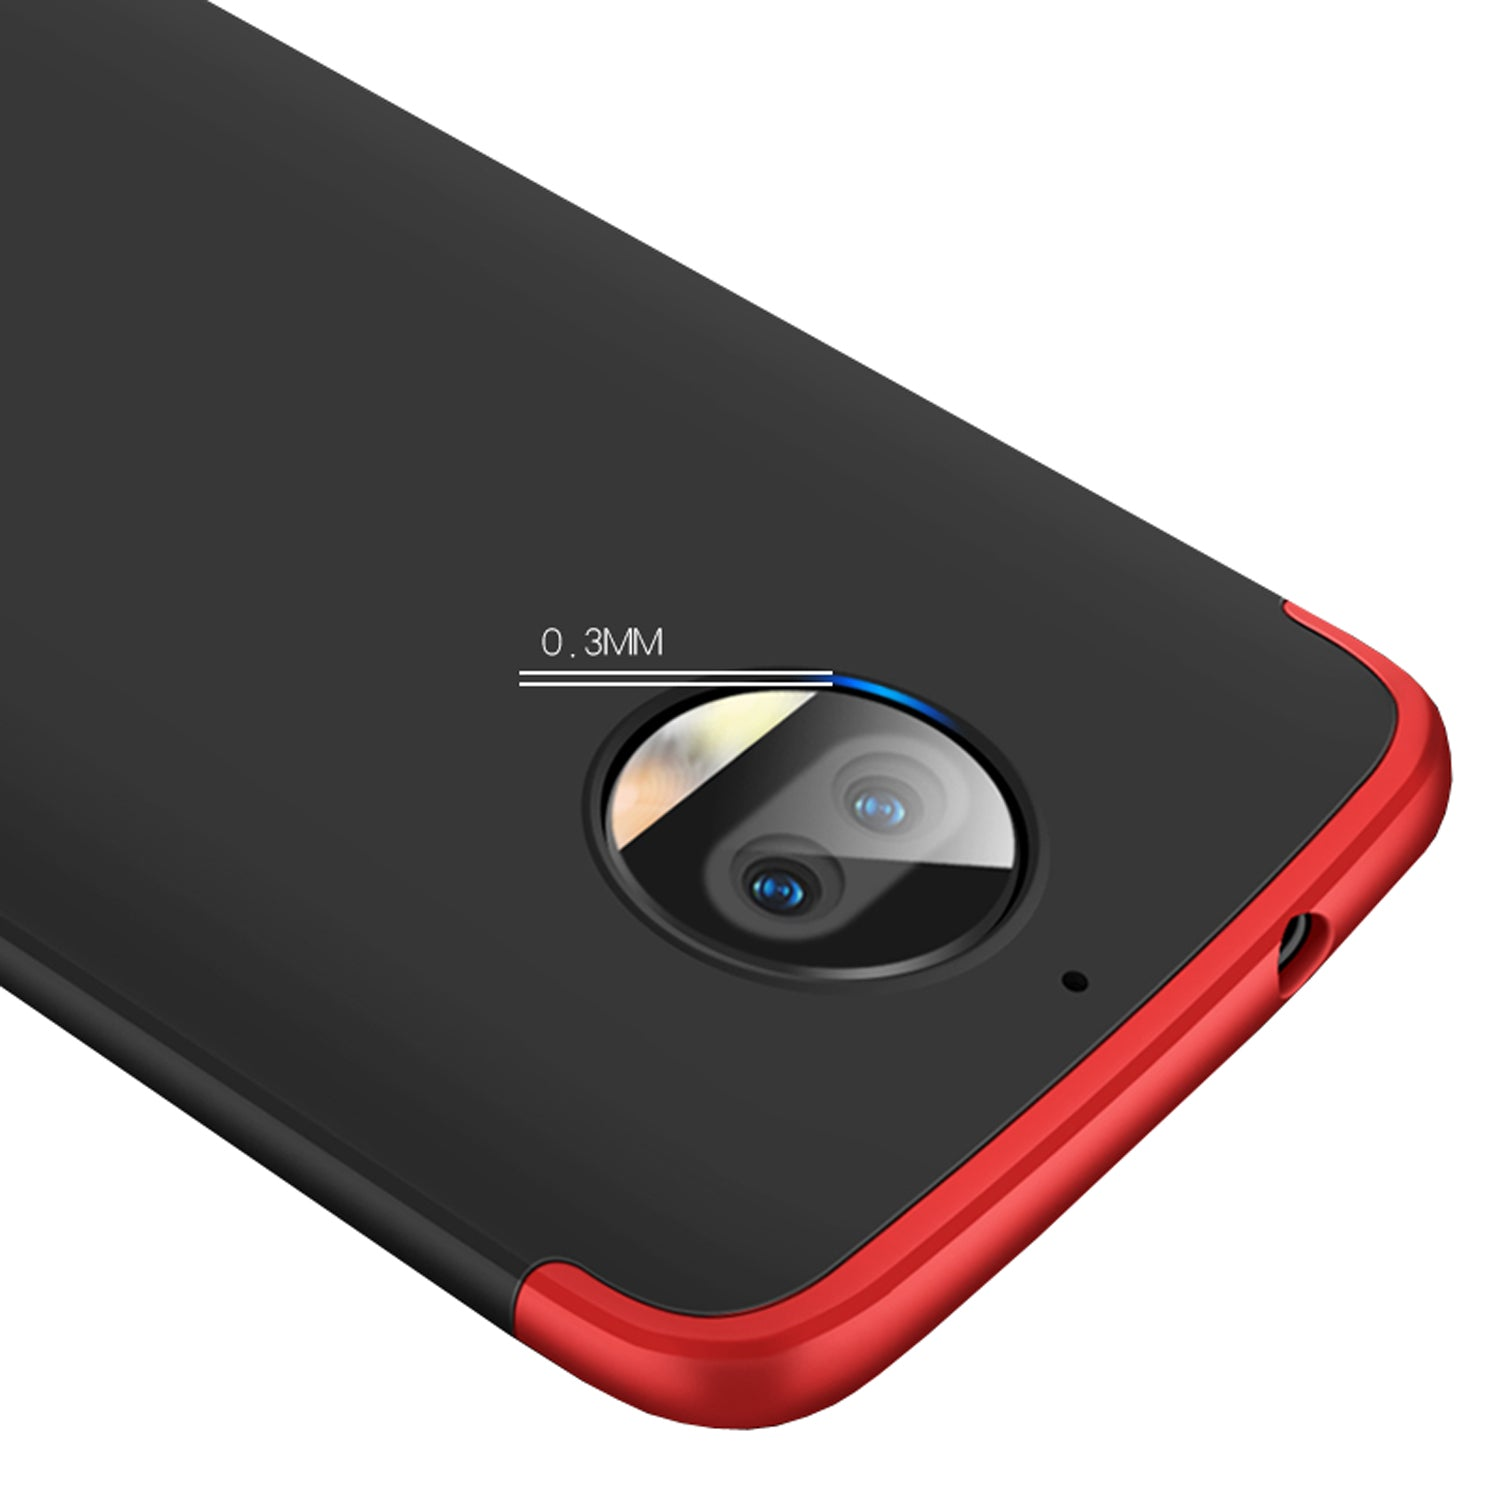 3 in 1 - 360° Full Protection Body Case Cover for MOTO G5S Plus - Red , Black - Mobizang